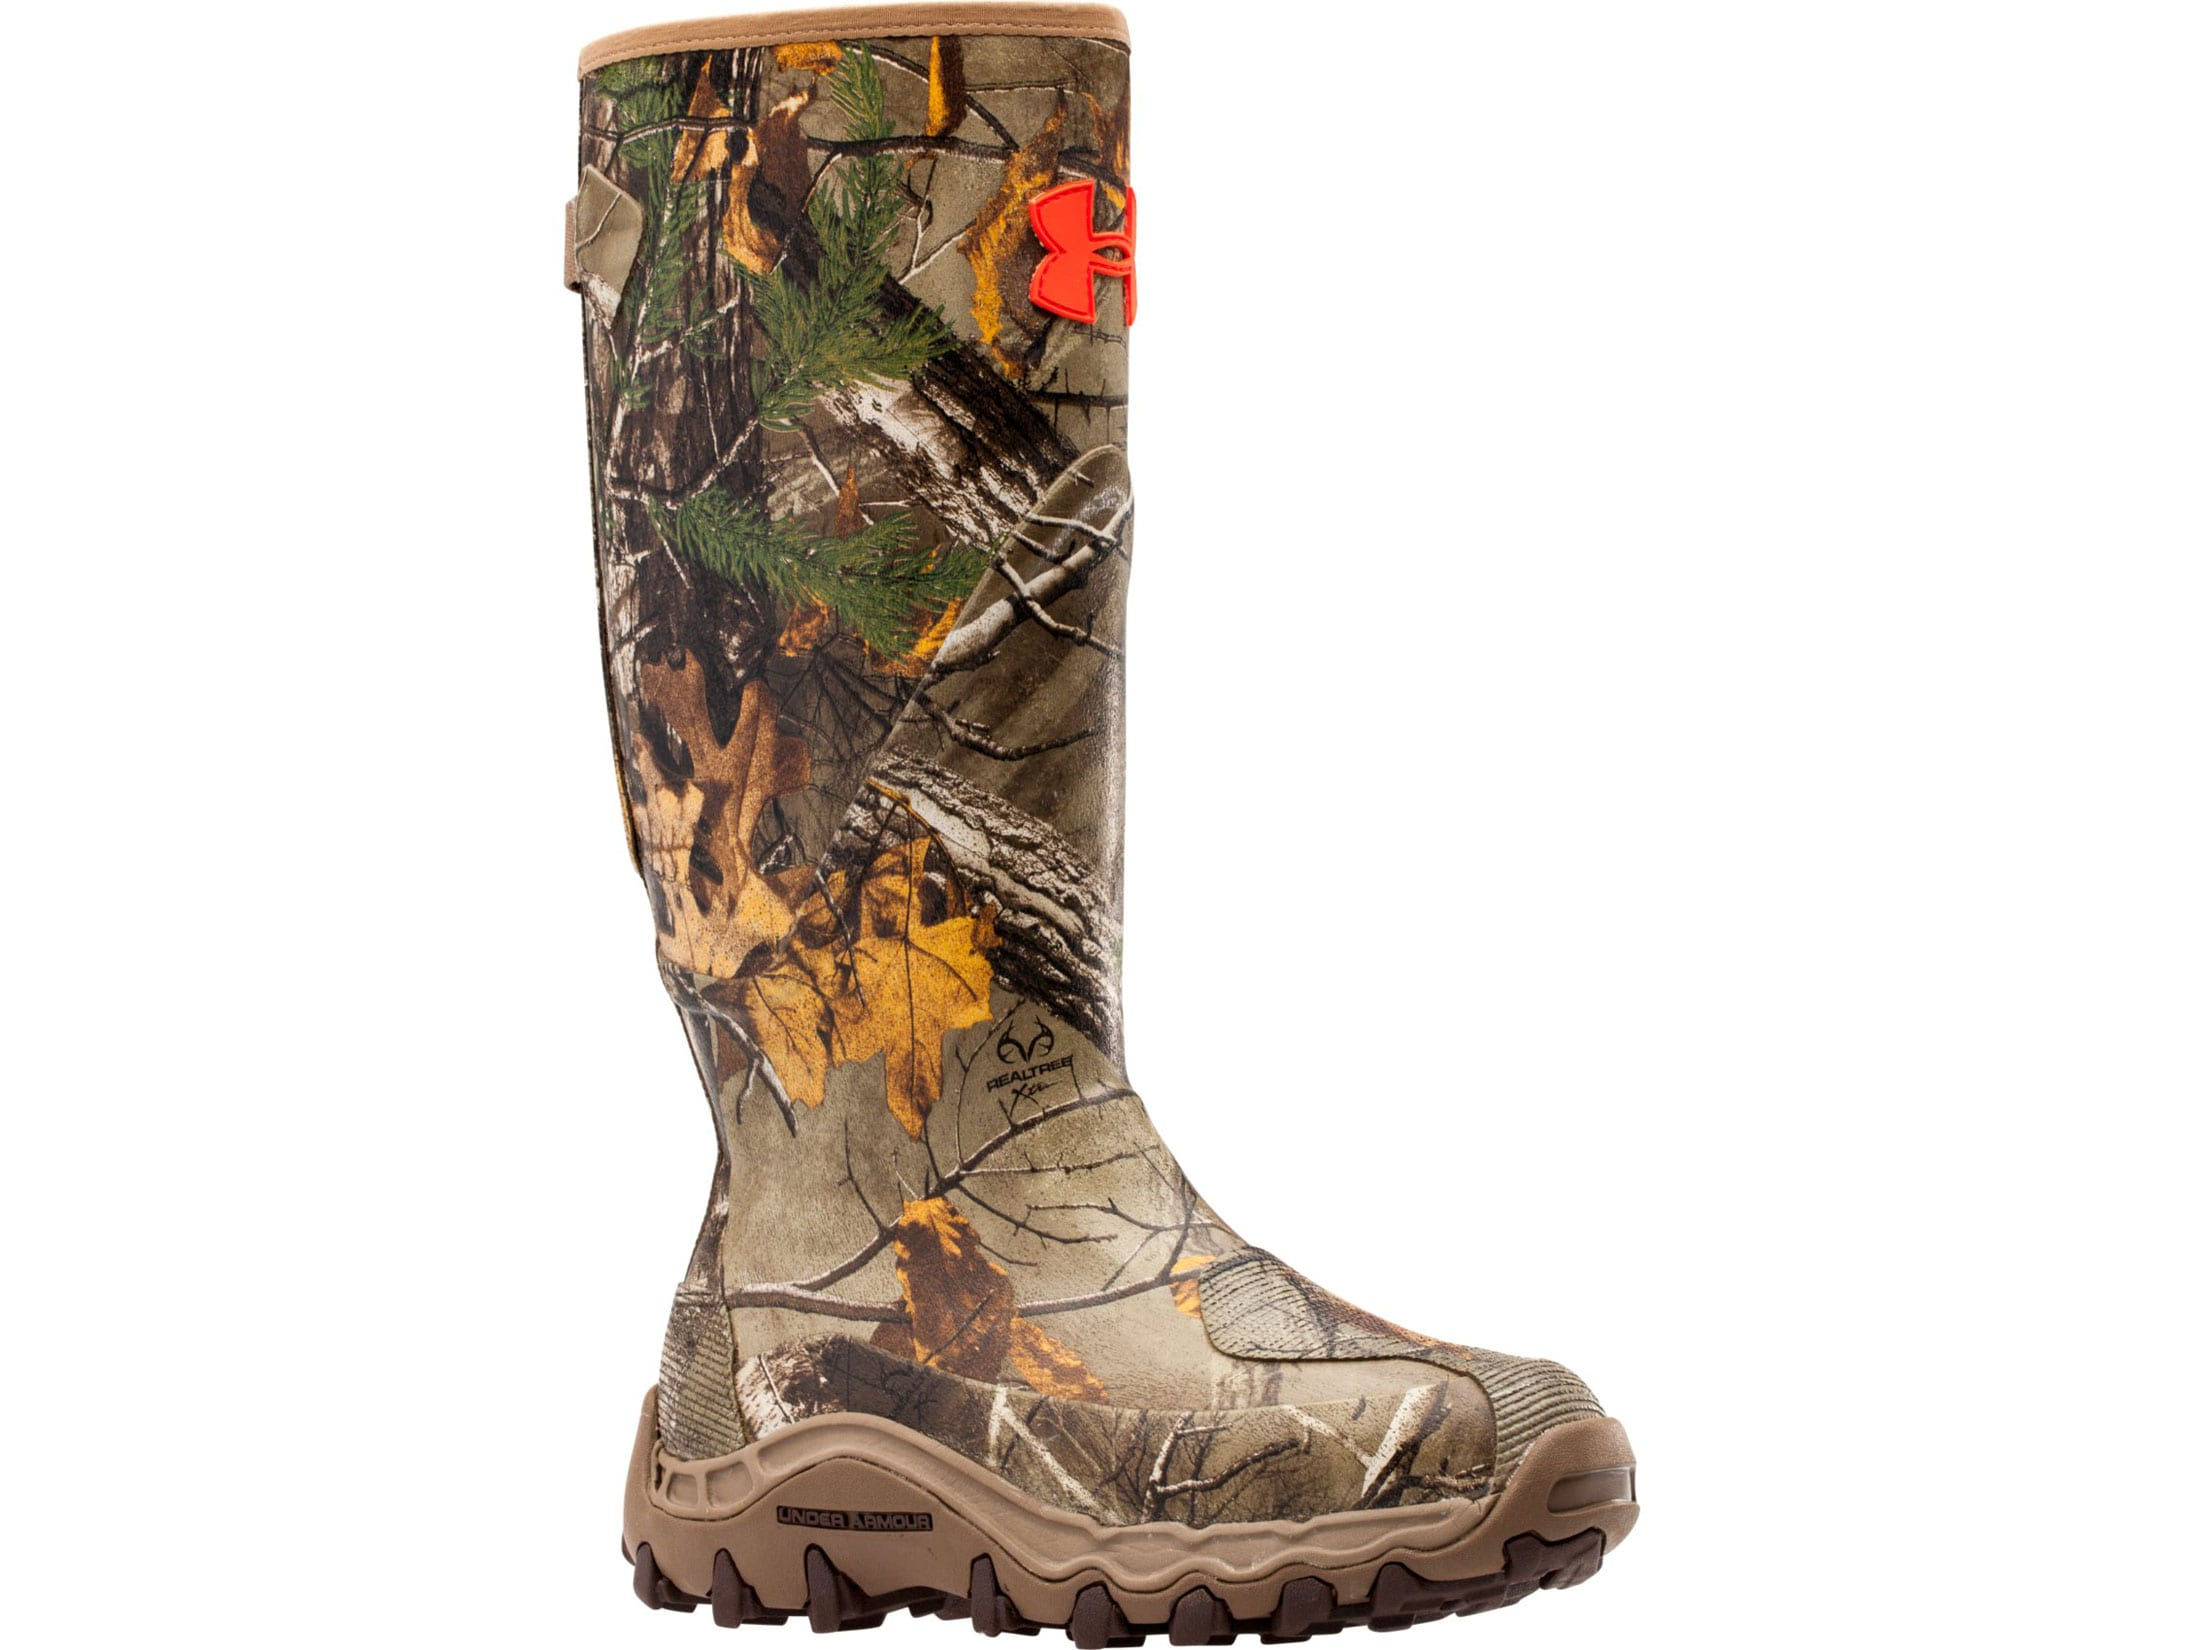 600 Gram Insulated Hunting Boots